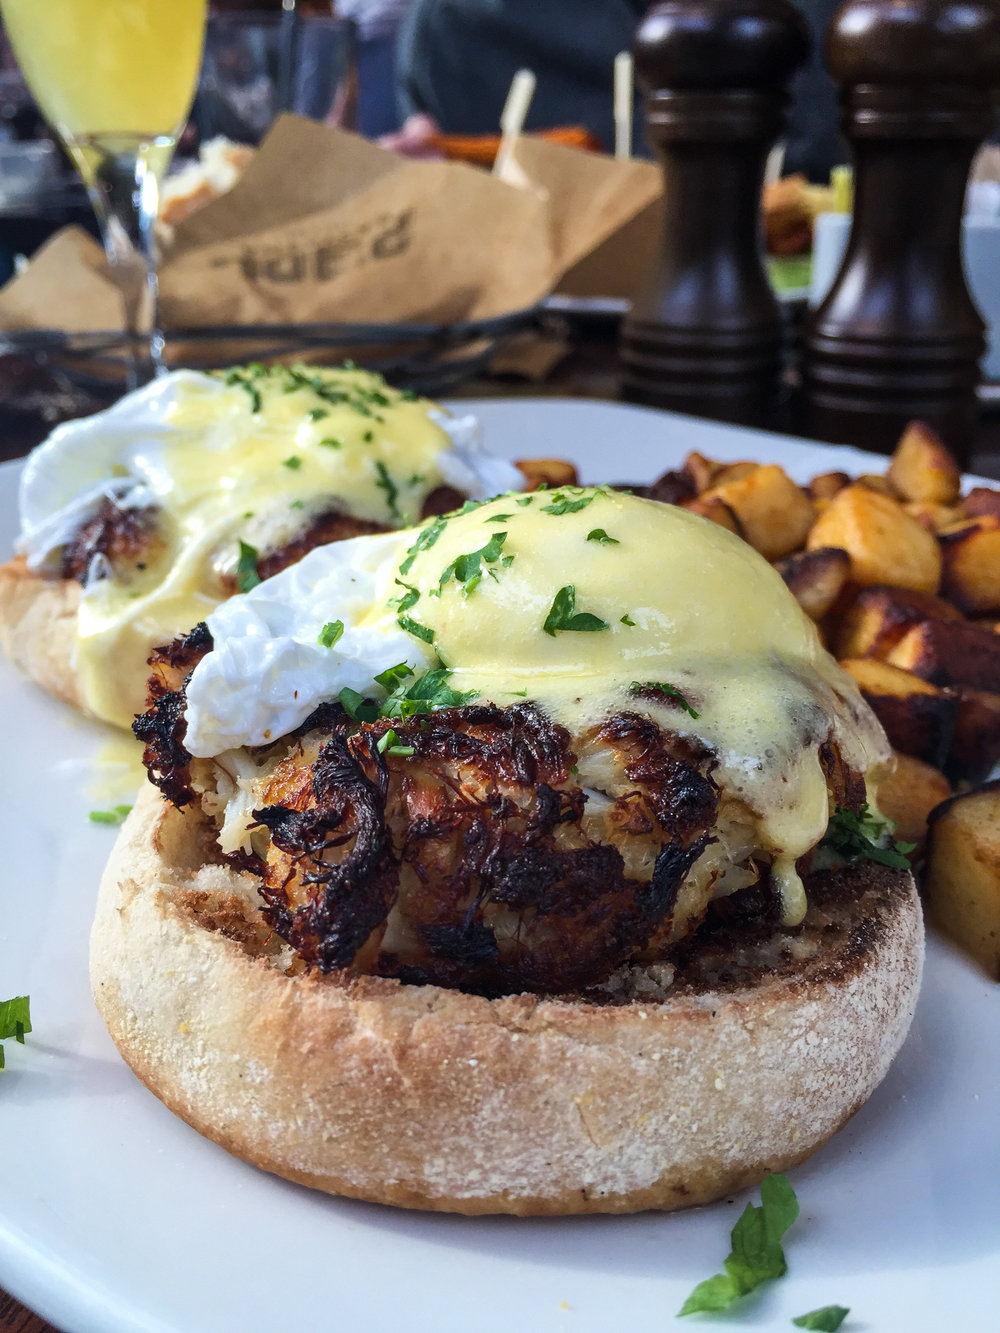 Crab Cake Benedict from Joe's American Bar & Grill - Lump crab meat, poached eggs, hollandaise sauce, home fries.$21.00